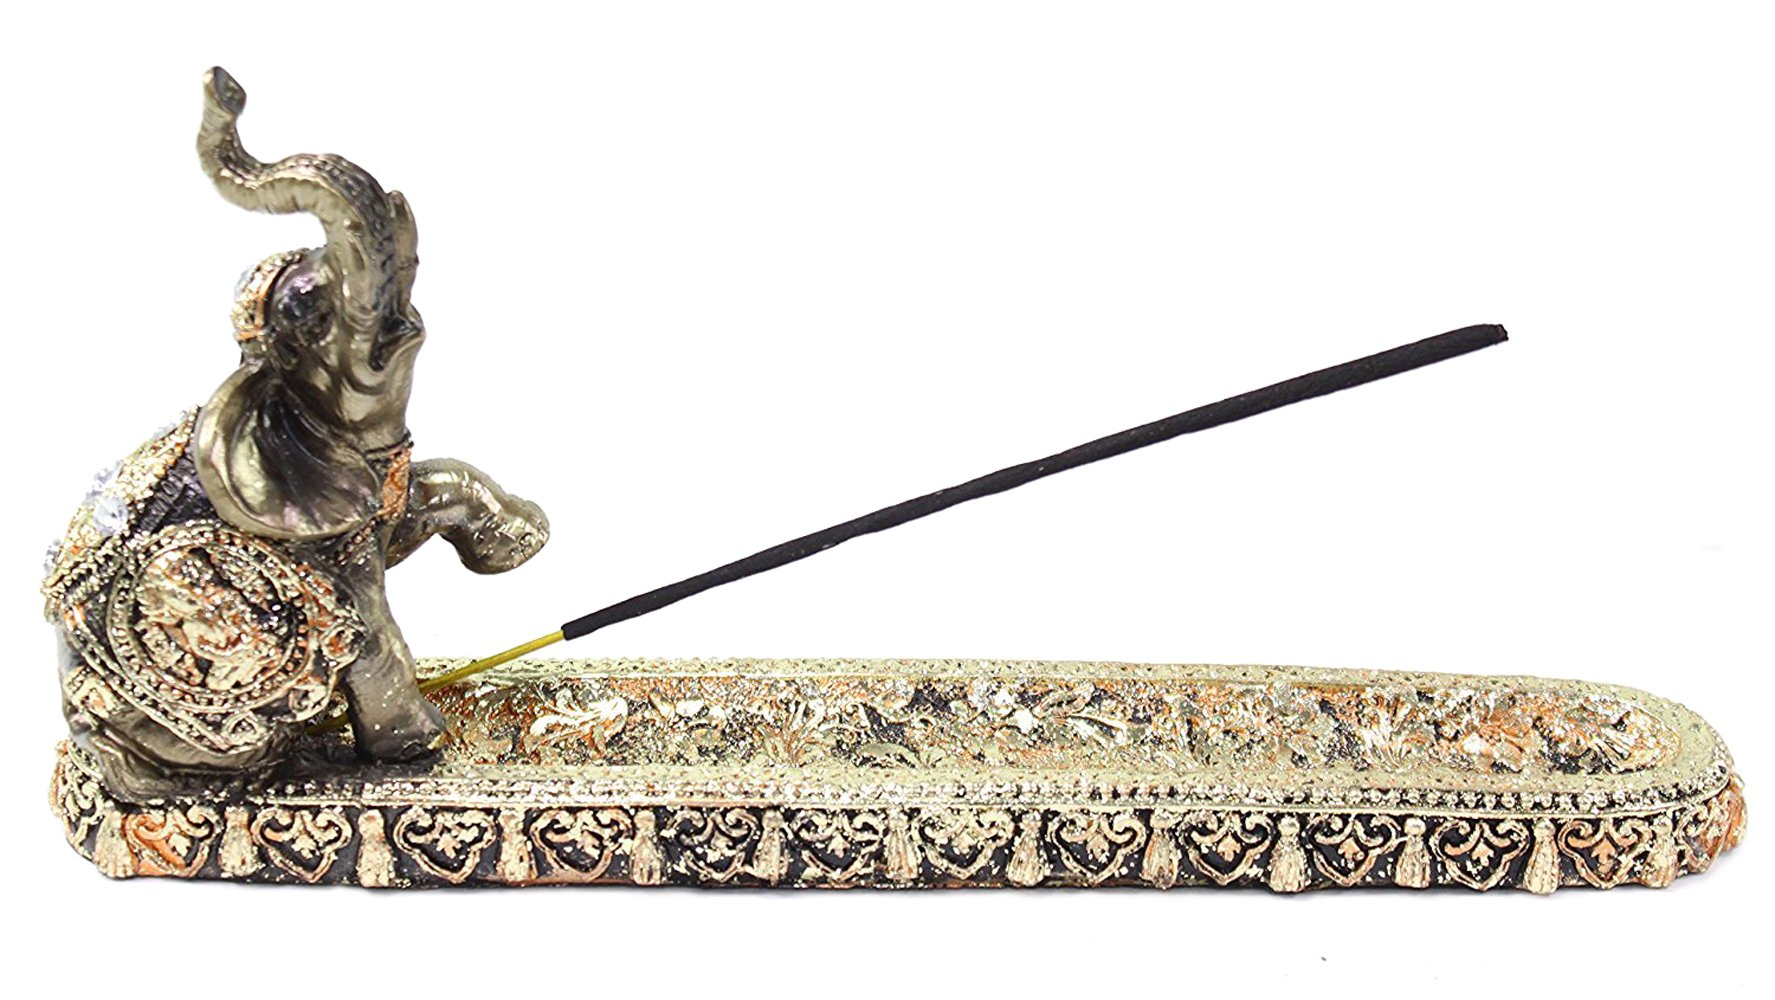 Gold Thai Elephant Buddha Wraps Incense Burner Holder Lucky Figurine Home Decor Gift (G16555) Feng Shui Idea ~ We Pay Your Sales Tax by We pay your sales tax